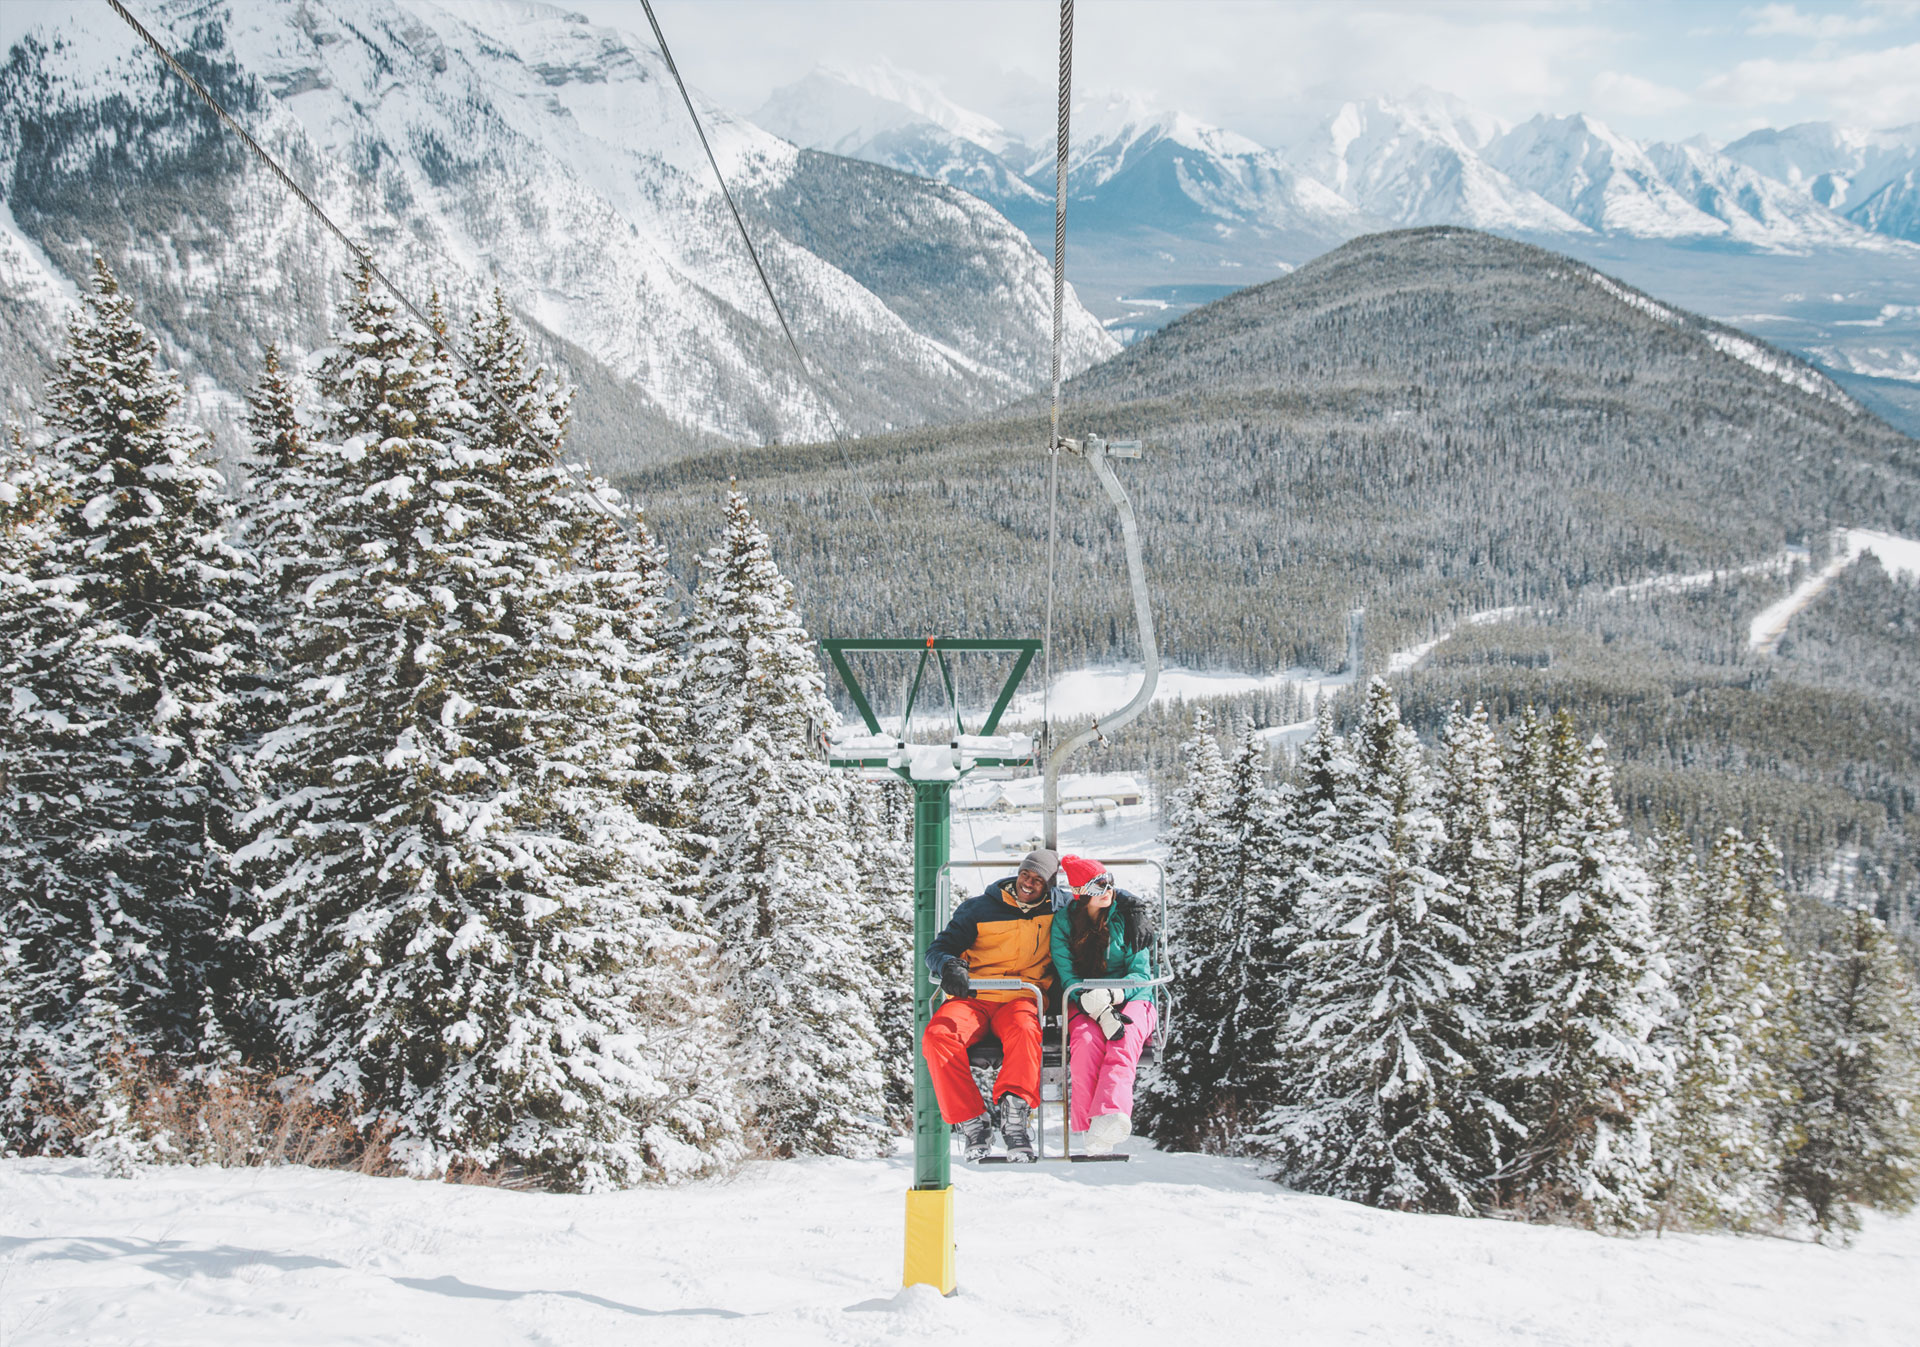 Riding the chairlift at Mount Norquay Ski Resort (Photo credit: Travel Alberta/Mike Seehagel).